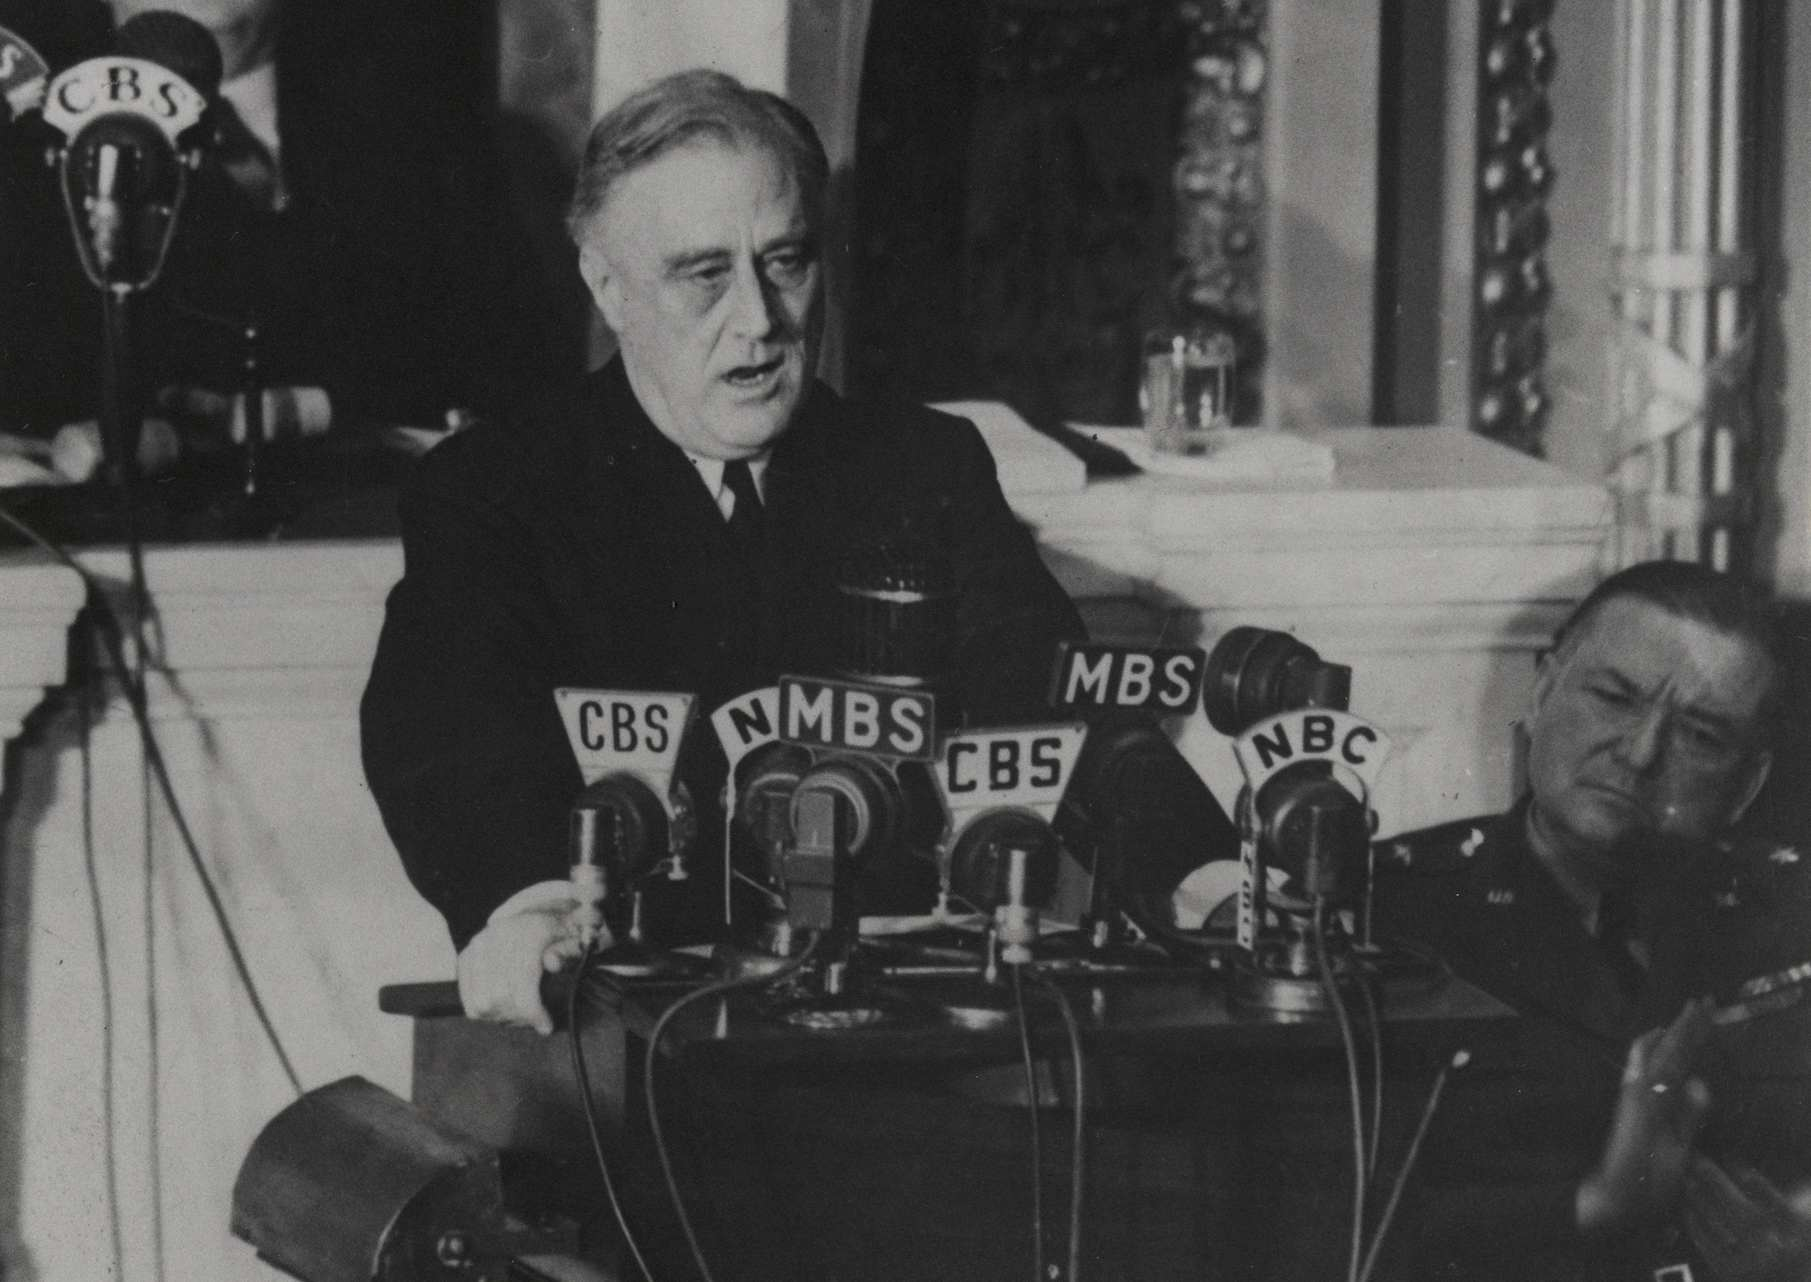 President Roosevelt delivering the Four Freedoms speech, January 6, 1941.